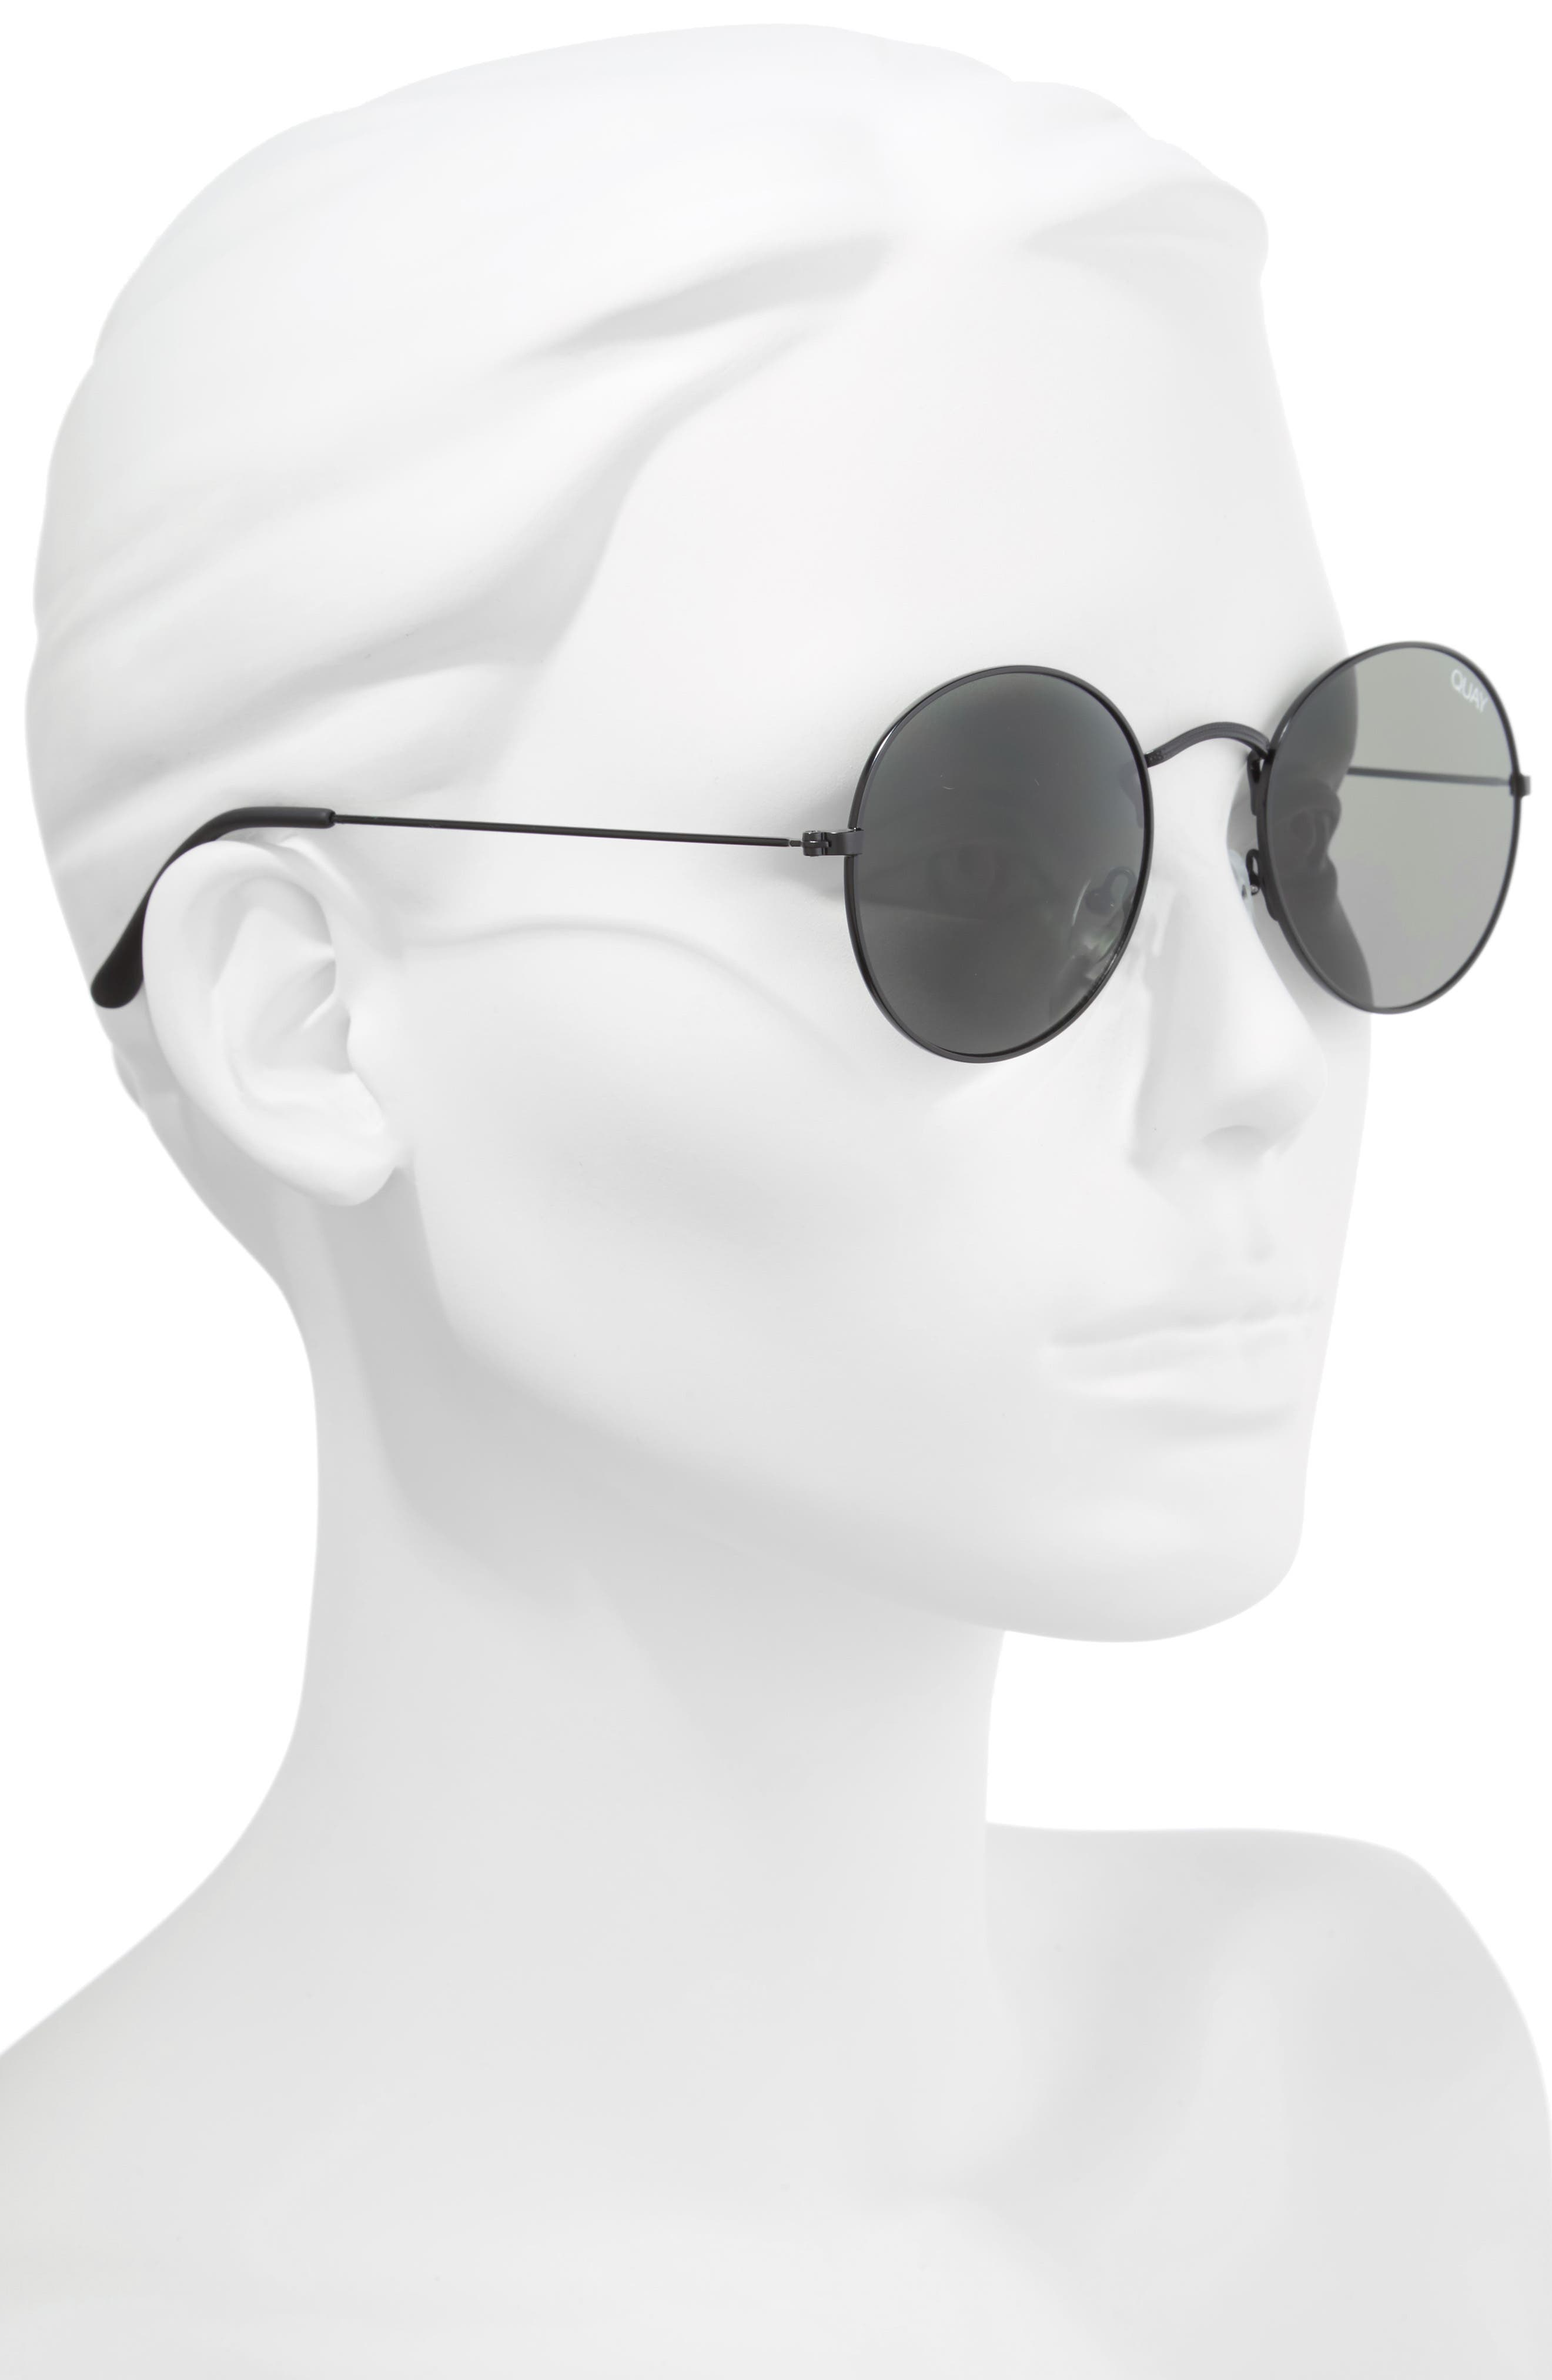 50mm Mod Star Round Sunglasses,                             Alternate thumbnail 2, color,                             014